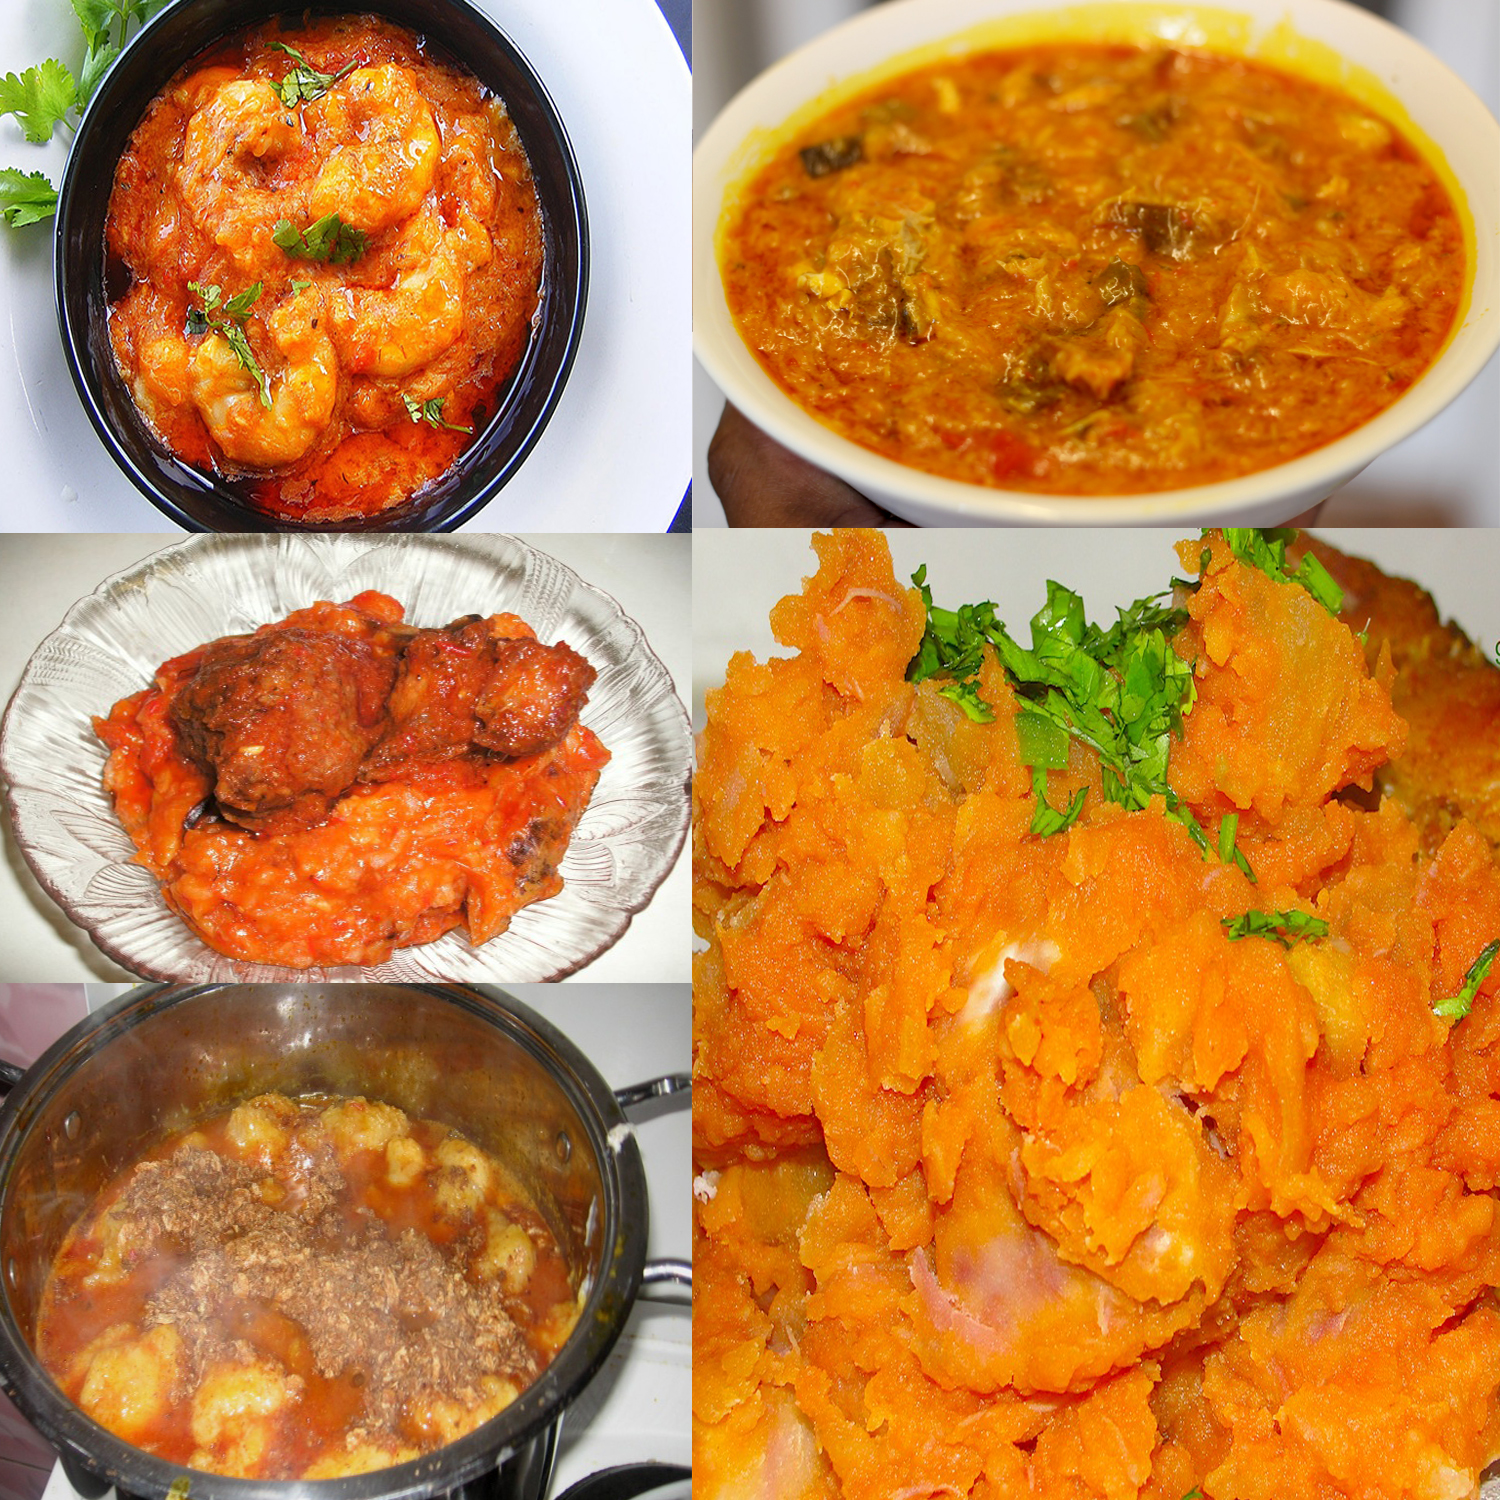 Yam Receipe: ALL AFRICAN DISHES: YAM RECIPES (IKOKORE